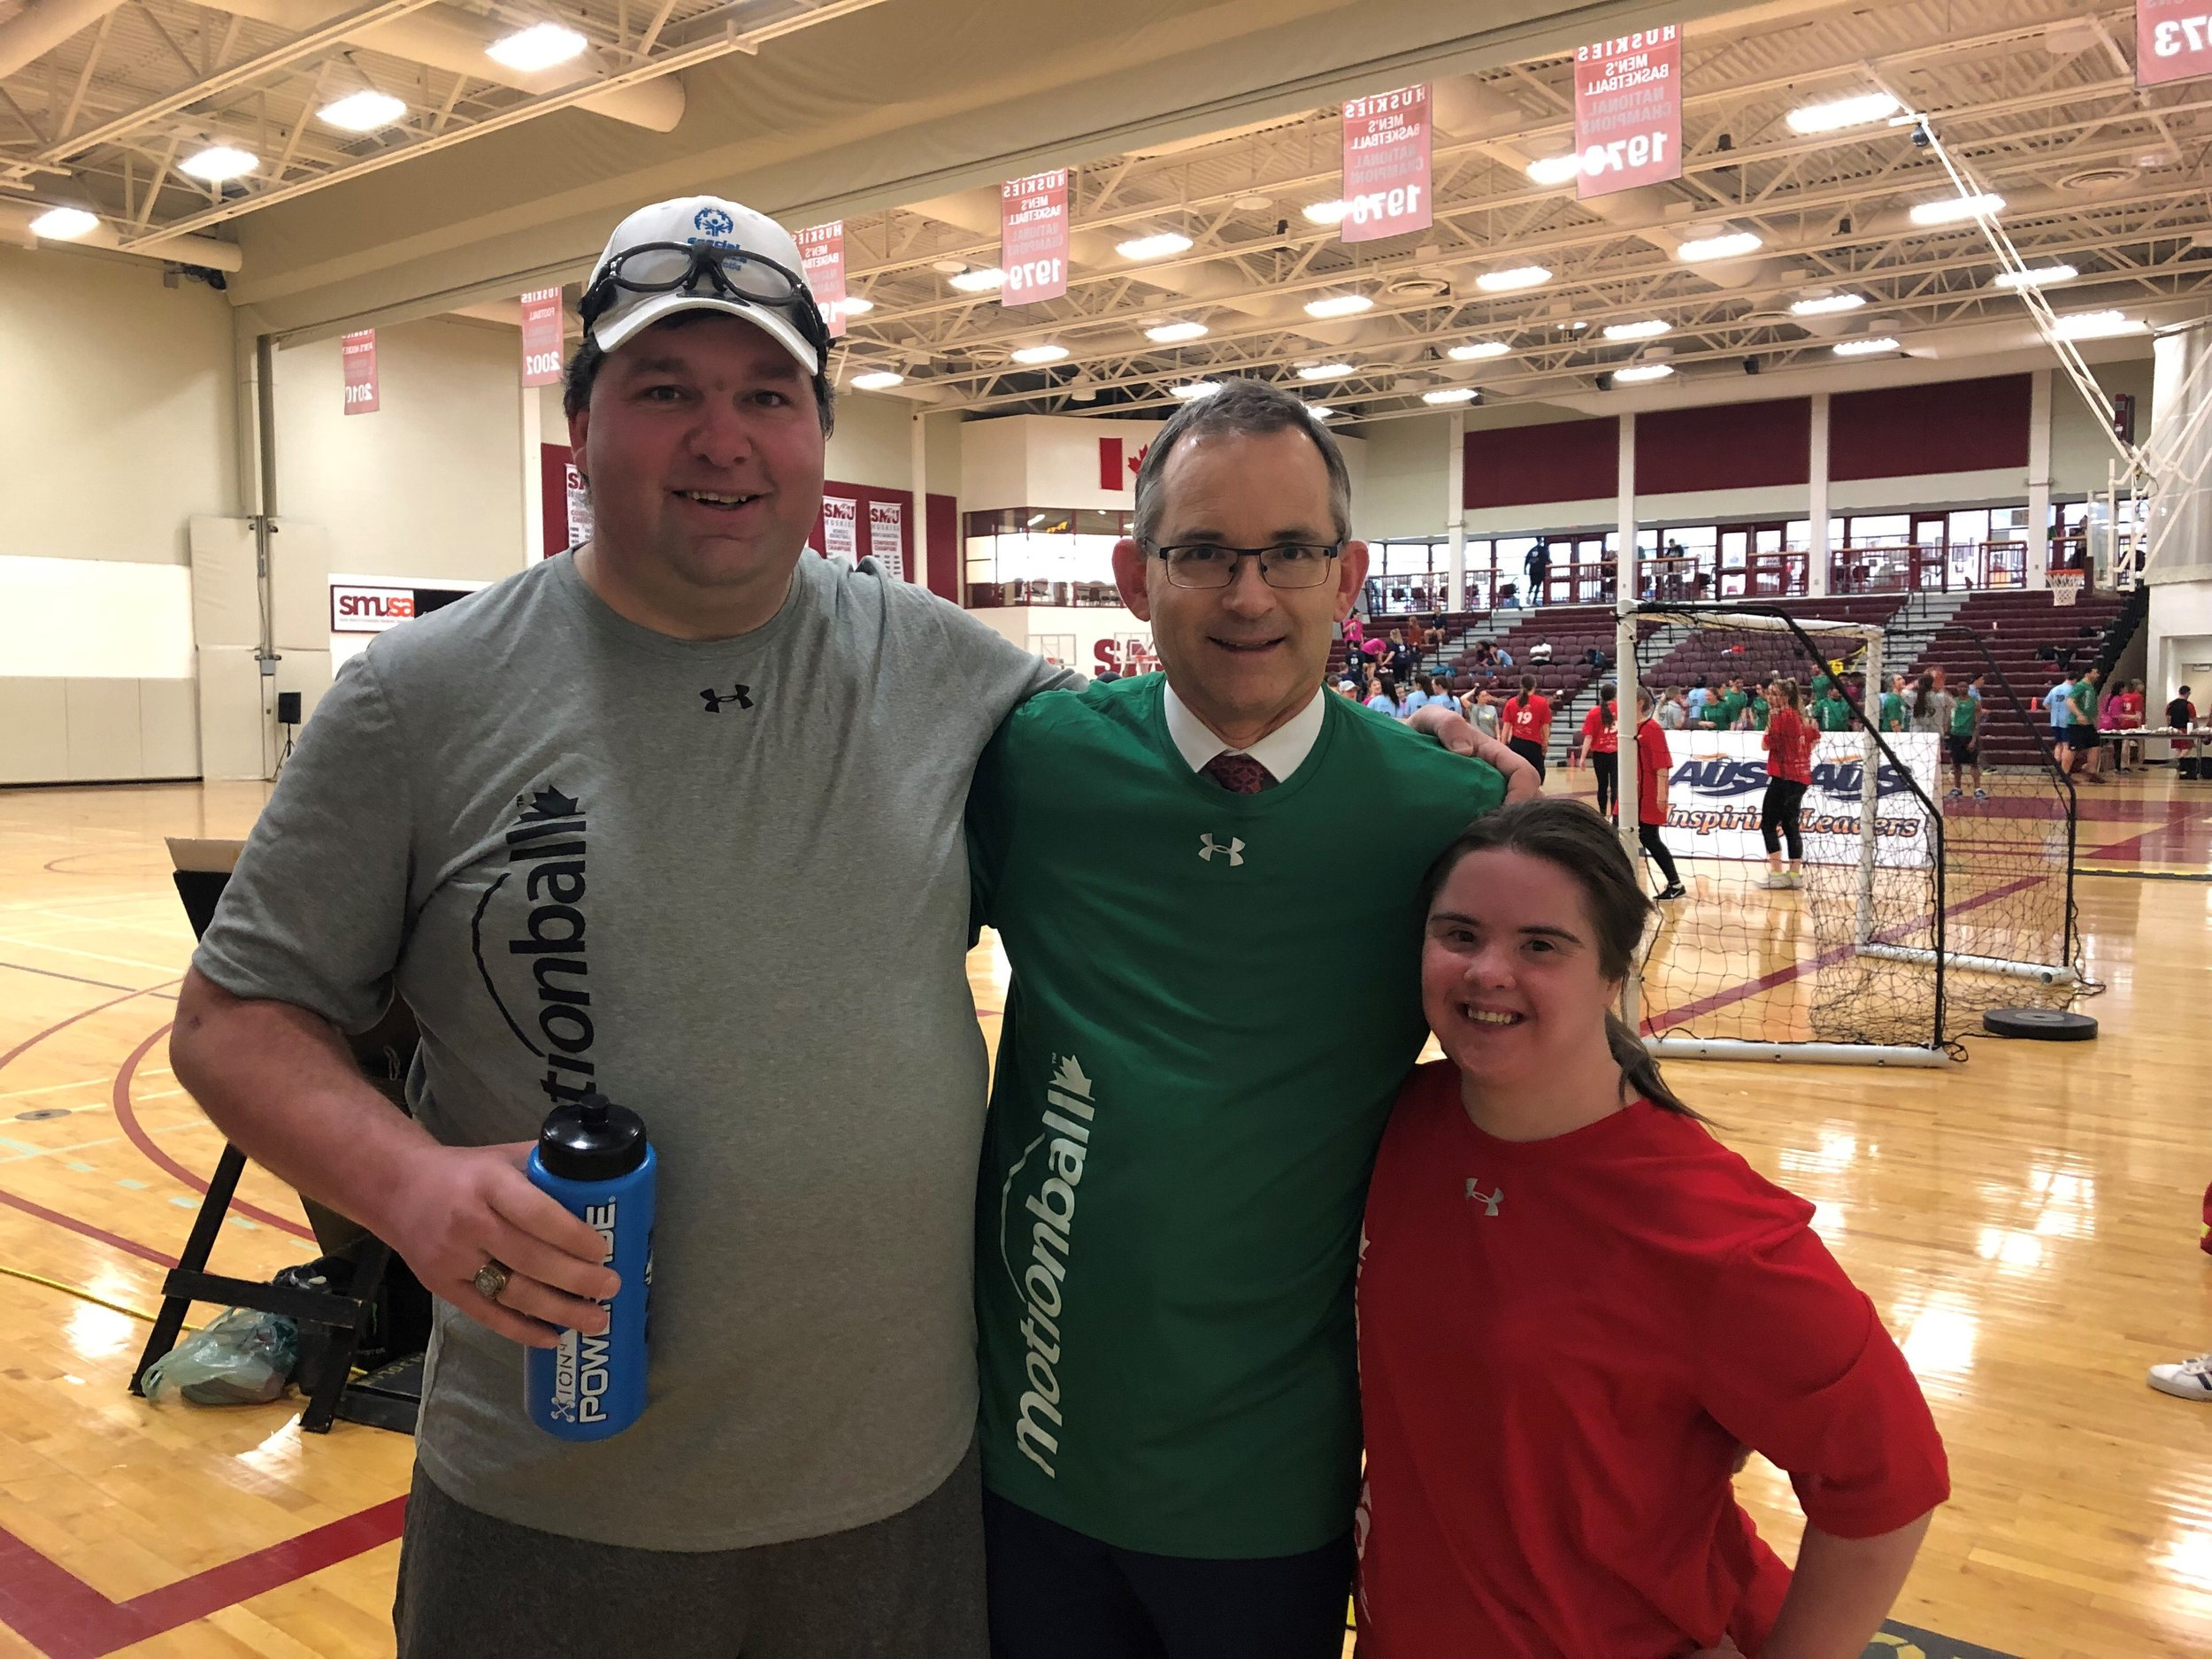 Rob Summerby-Murray met Special Olympics athletes Billy and Katie.